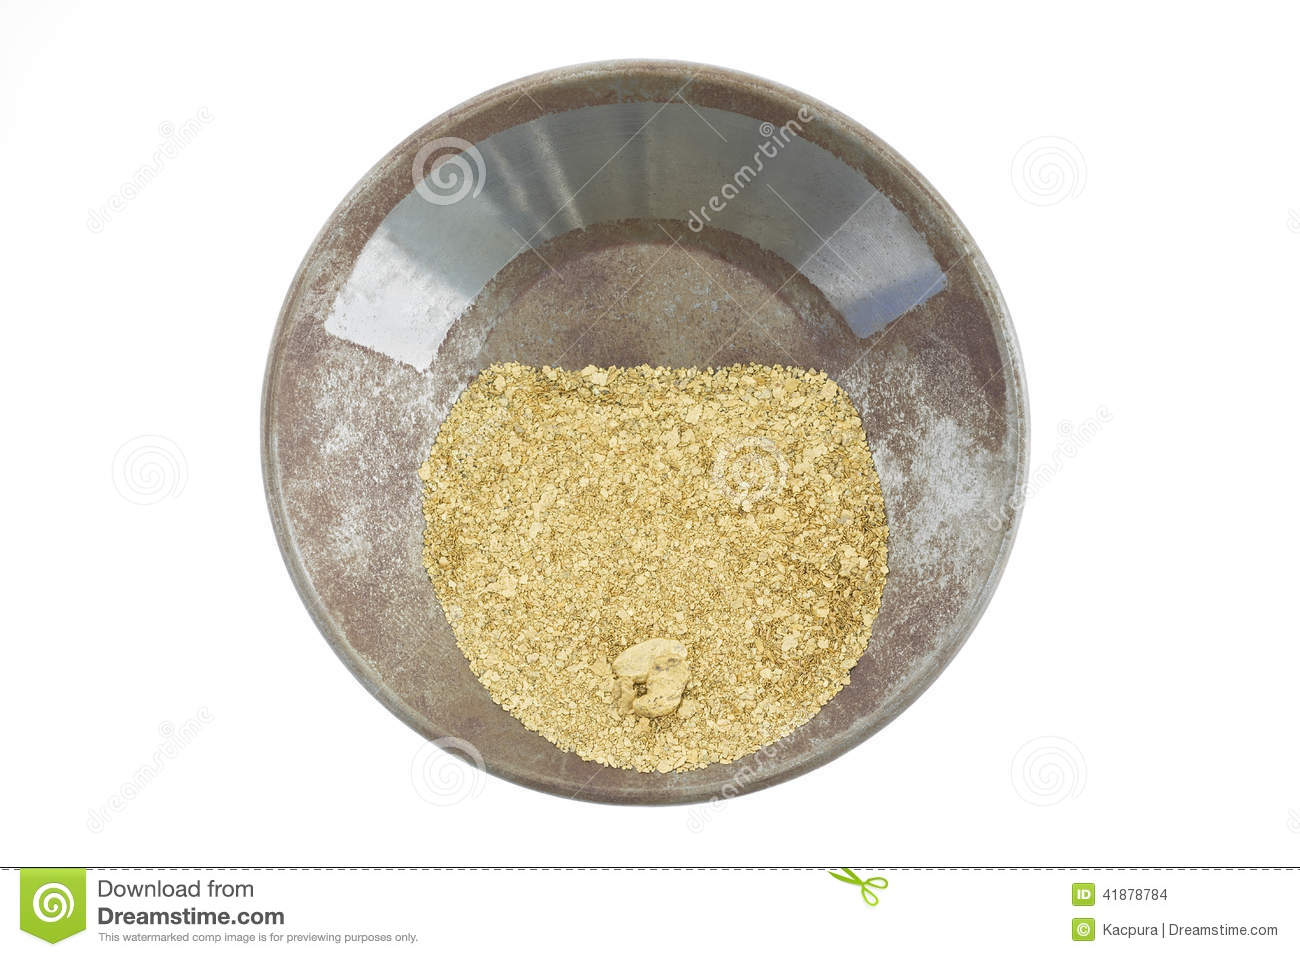 A gold pan filled with natural placer gold